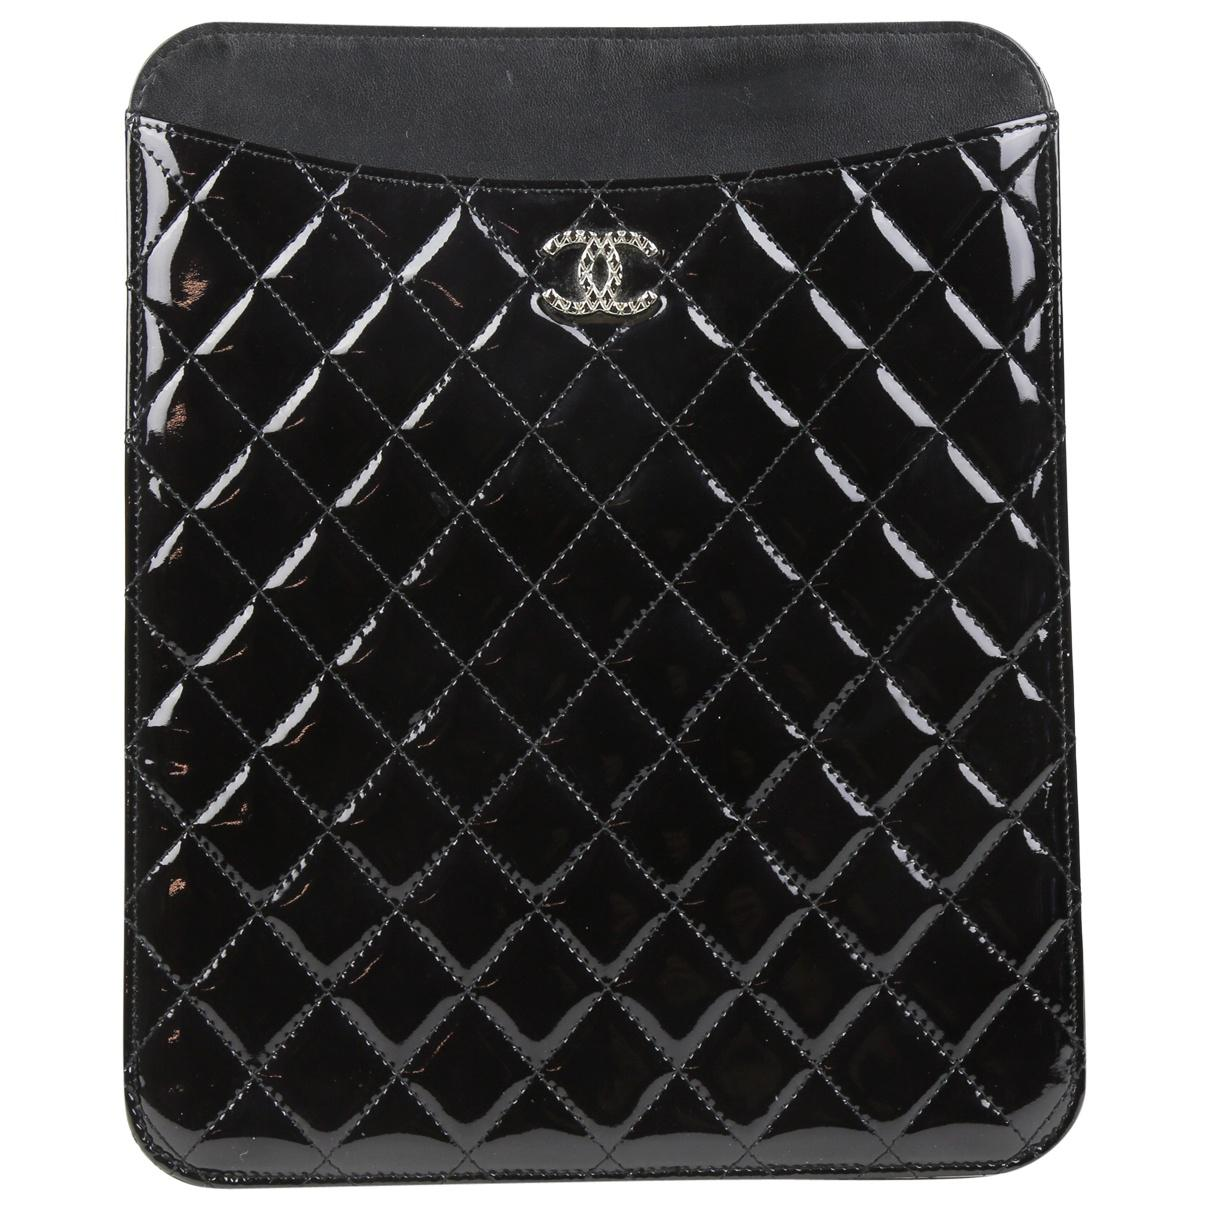 d992ac63e2b9e7 Chanel Ipad Case in Black - Lyst